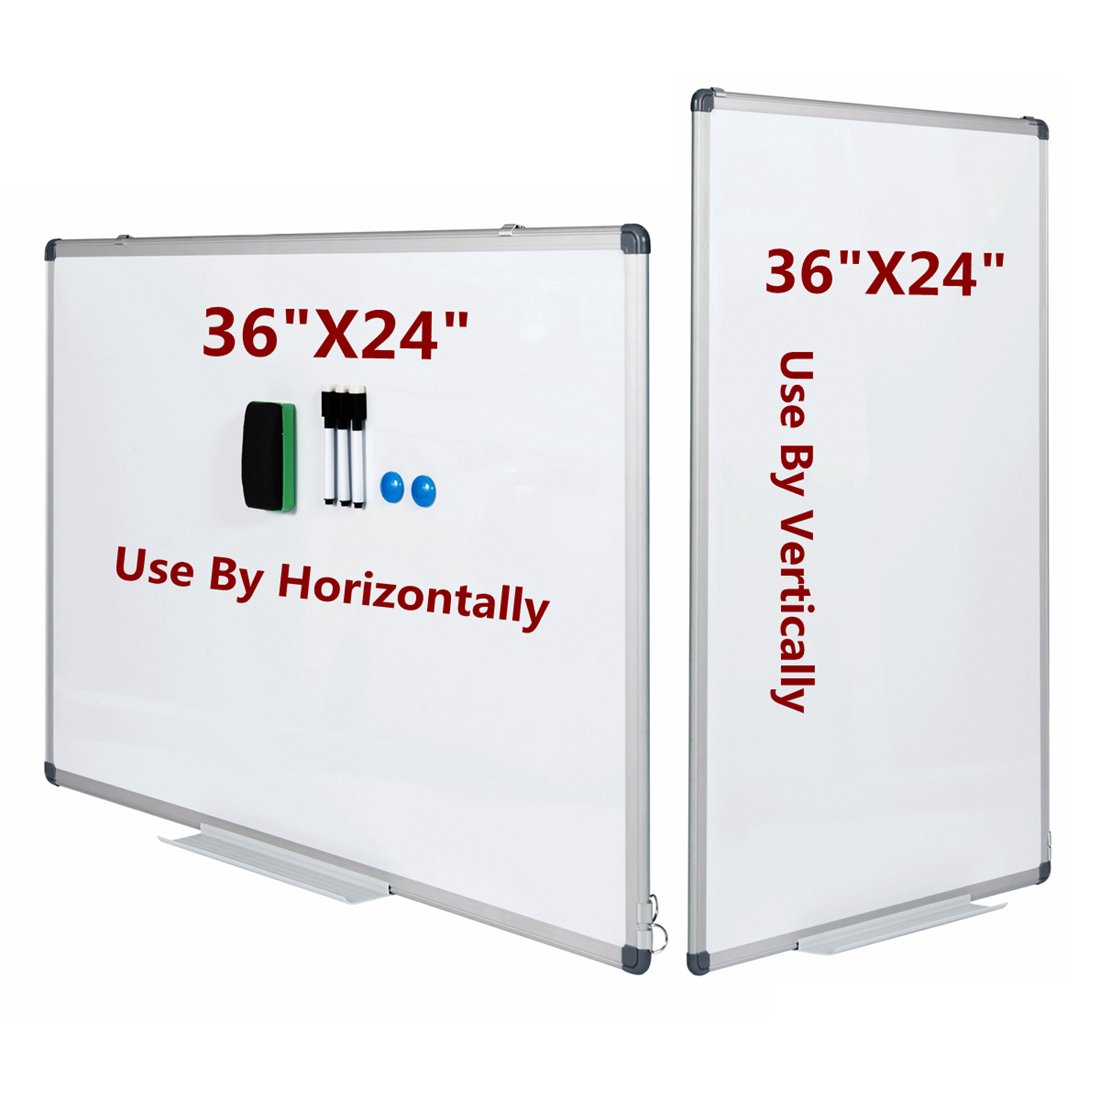 GOOD LIFE 36'' x 24'' Horizontal & vertical compatible Dry Erase Board Magnetic Markers Aluminum Frame Whiteboard Set for Office and Classroom (Includes 3 x Pen & Pen Tray, 2 x Magnets & Eraser,1x Bubbl